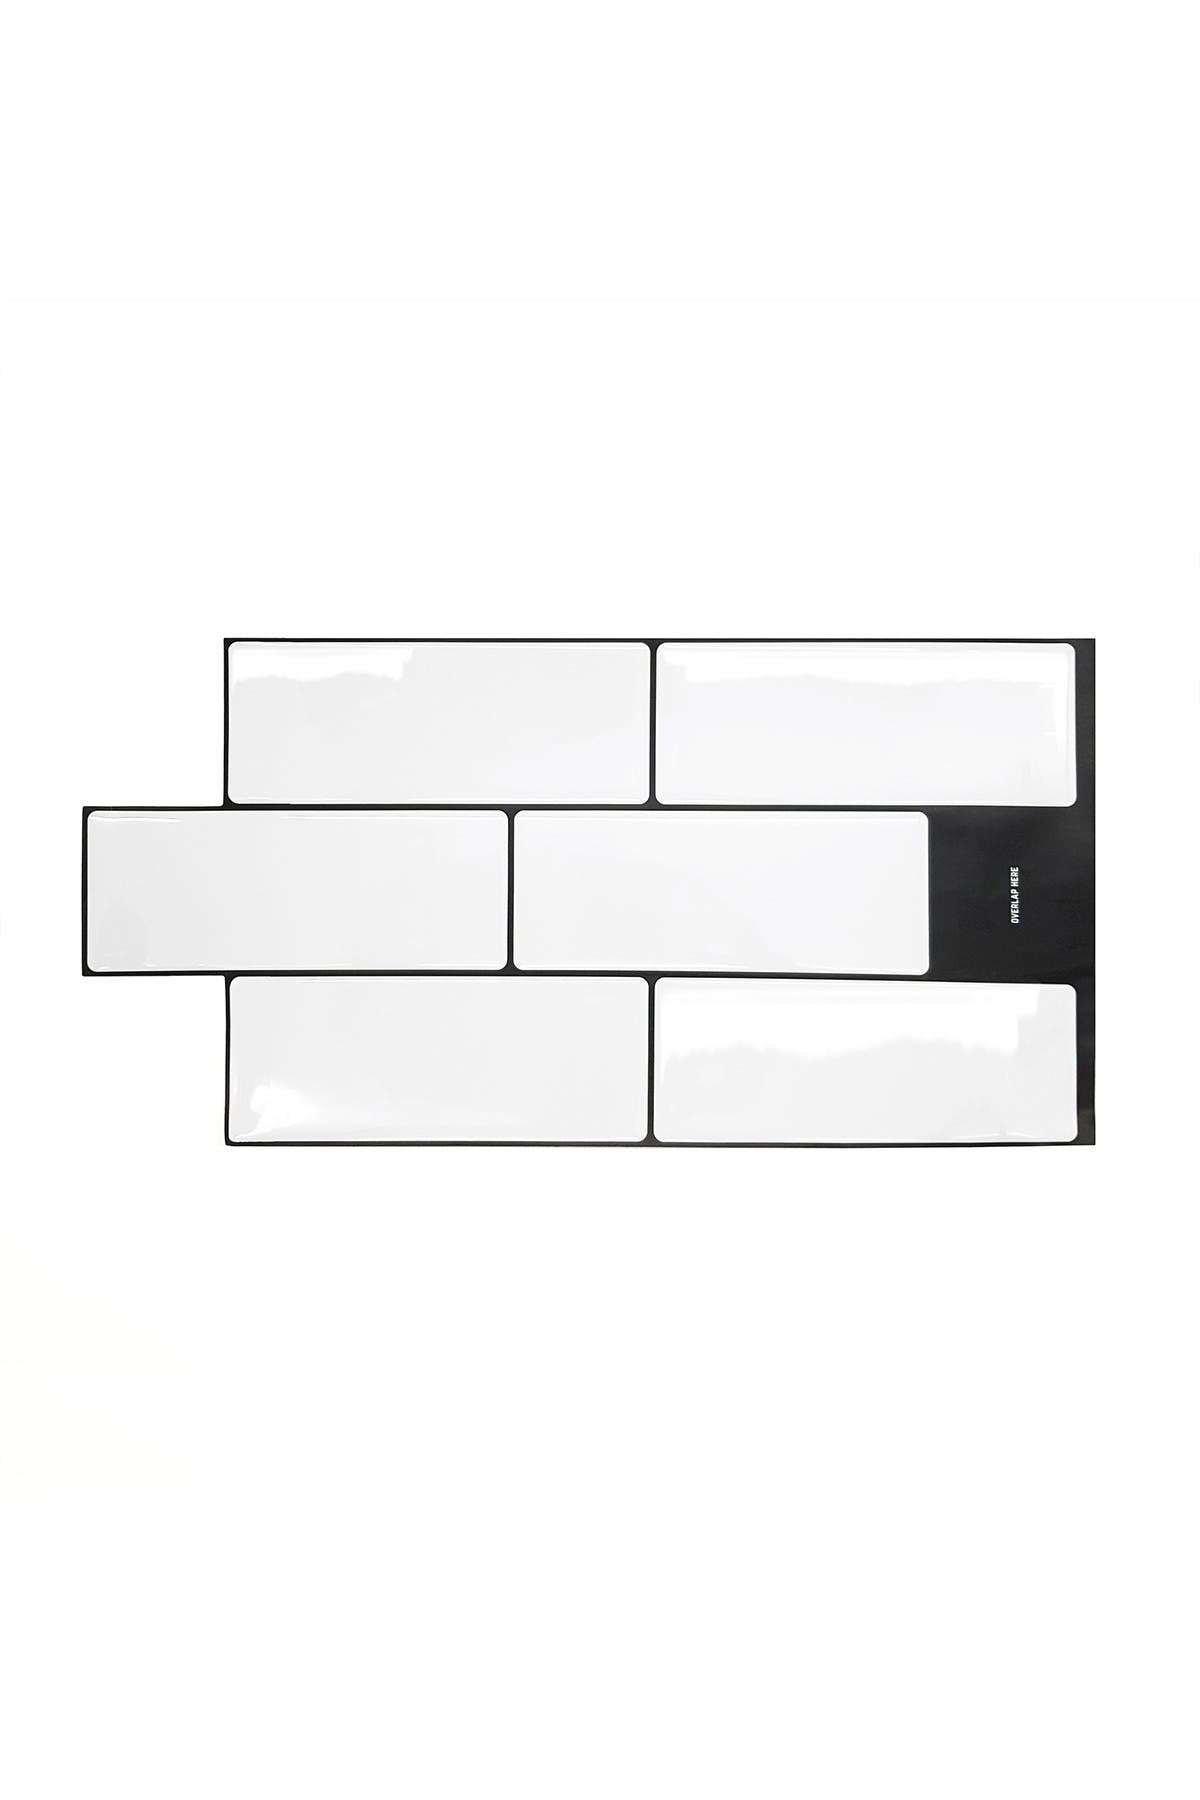 """Image of WalPlus London Minimalist Brilliant White Glossy 3D Tile Stickers - 30cm x 15cm (11.8"""" x 6"""") - 12-Piece in a pack"""